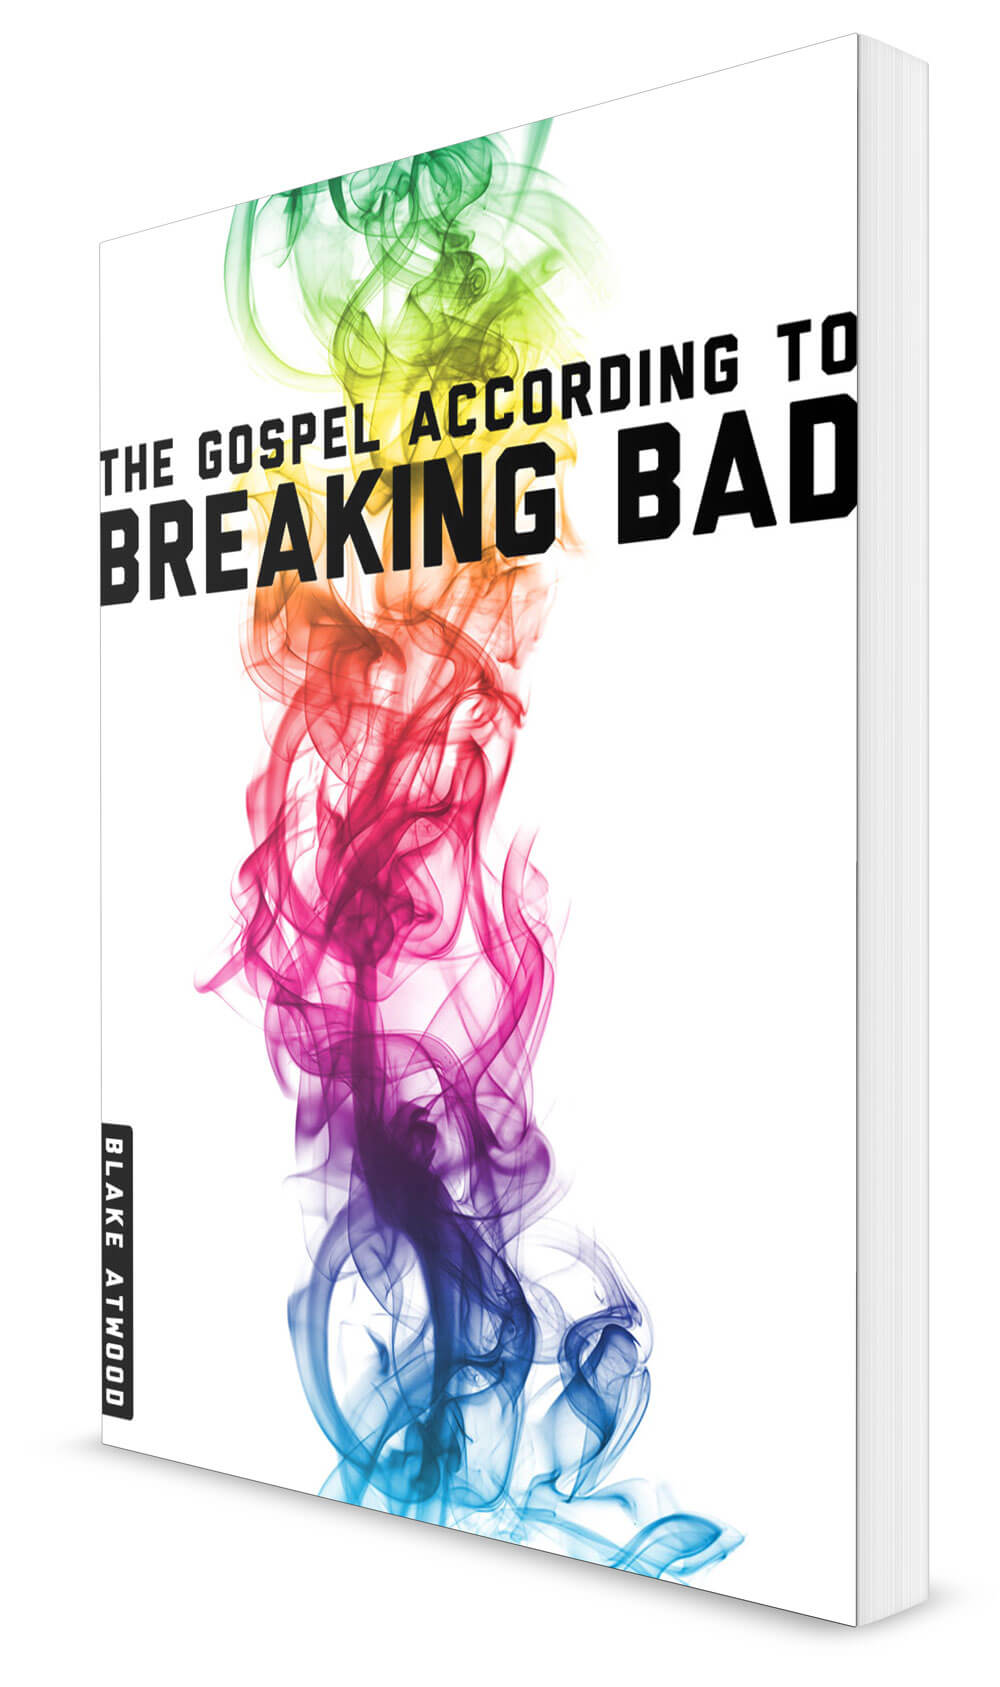 The Genesis for 'The Gospel According to Breaking Bad'